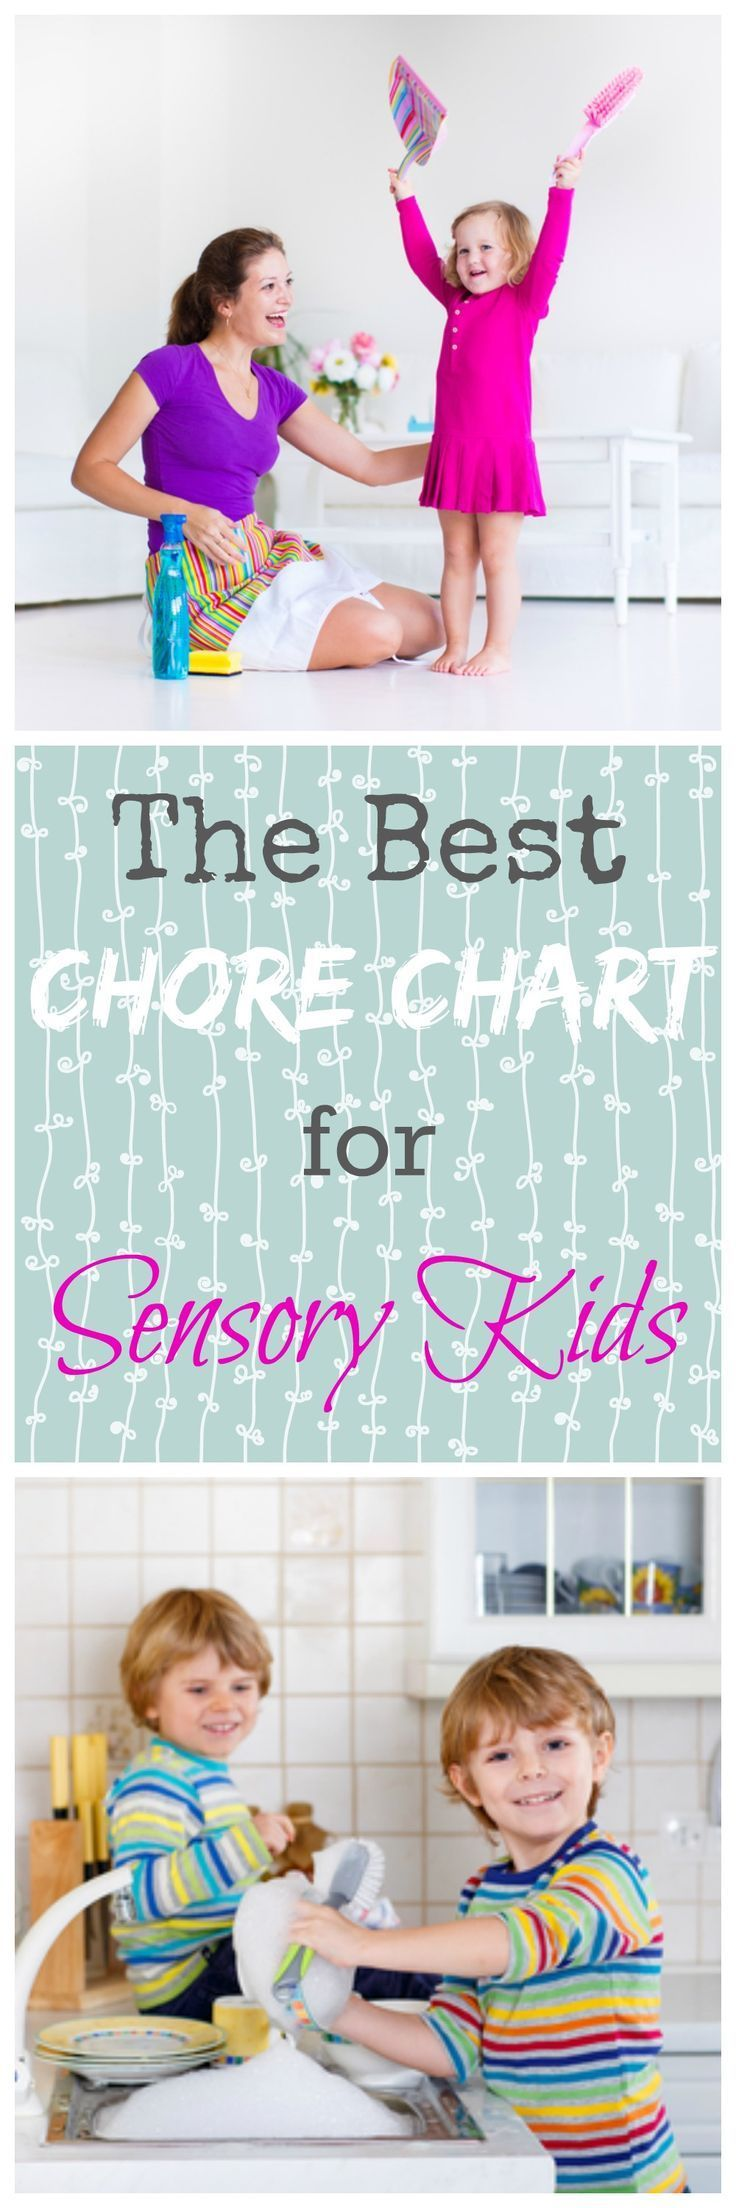 Colour therapy for hyperactivity - The Best Chore Chart For Sensory Sensitive Kids